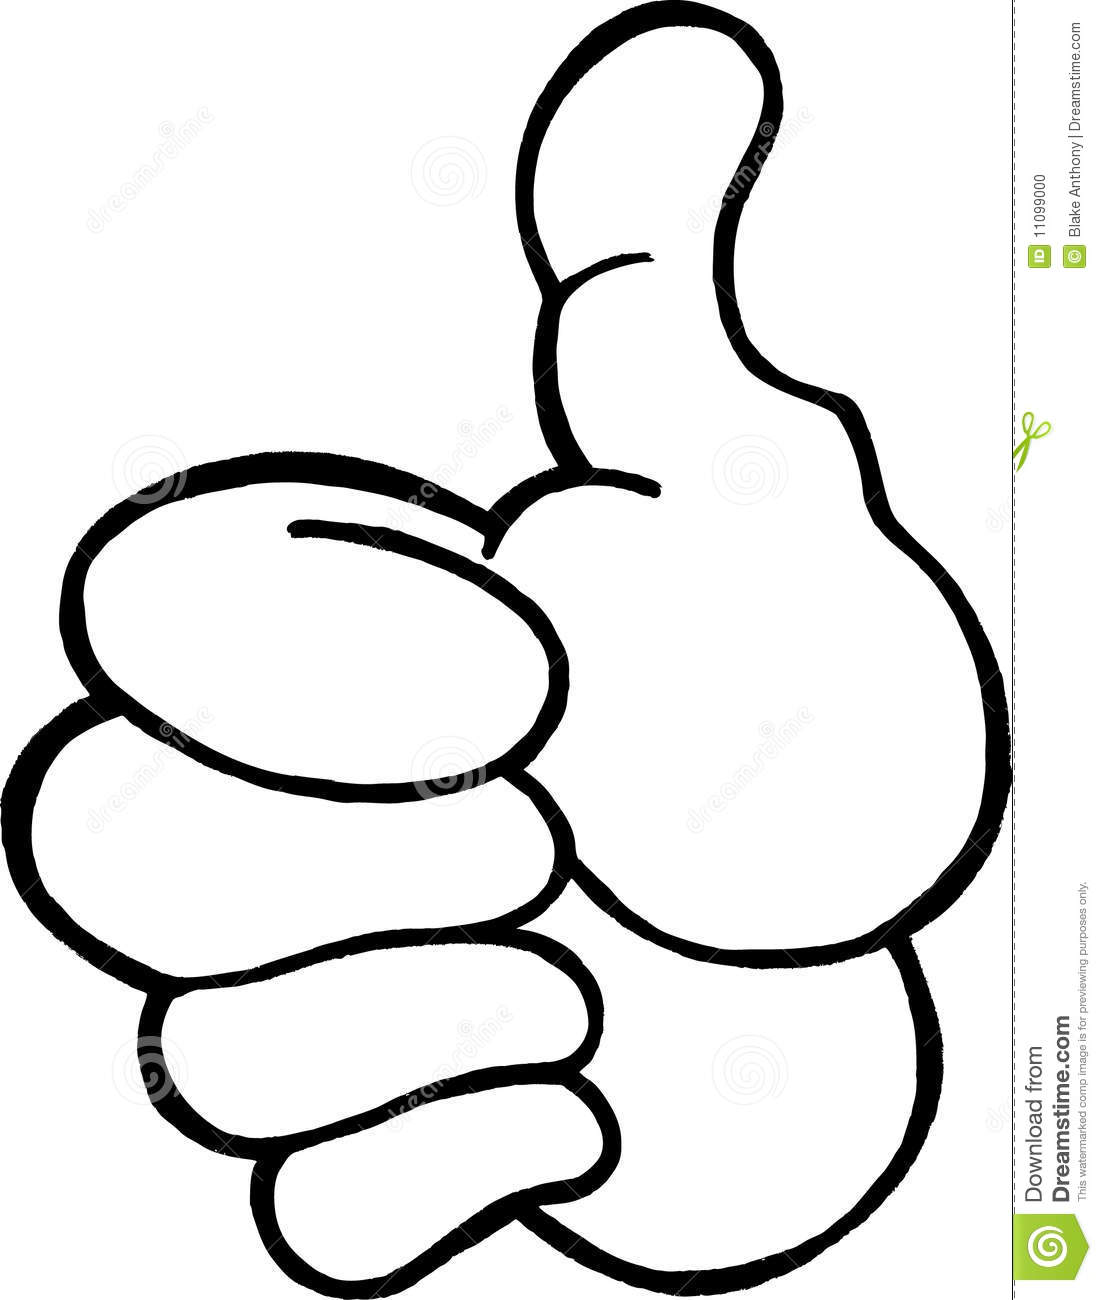 thumbs up vector stock illustration illustration of approved 11099000 dreamstime com